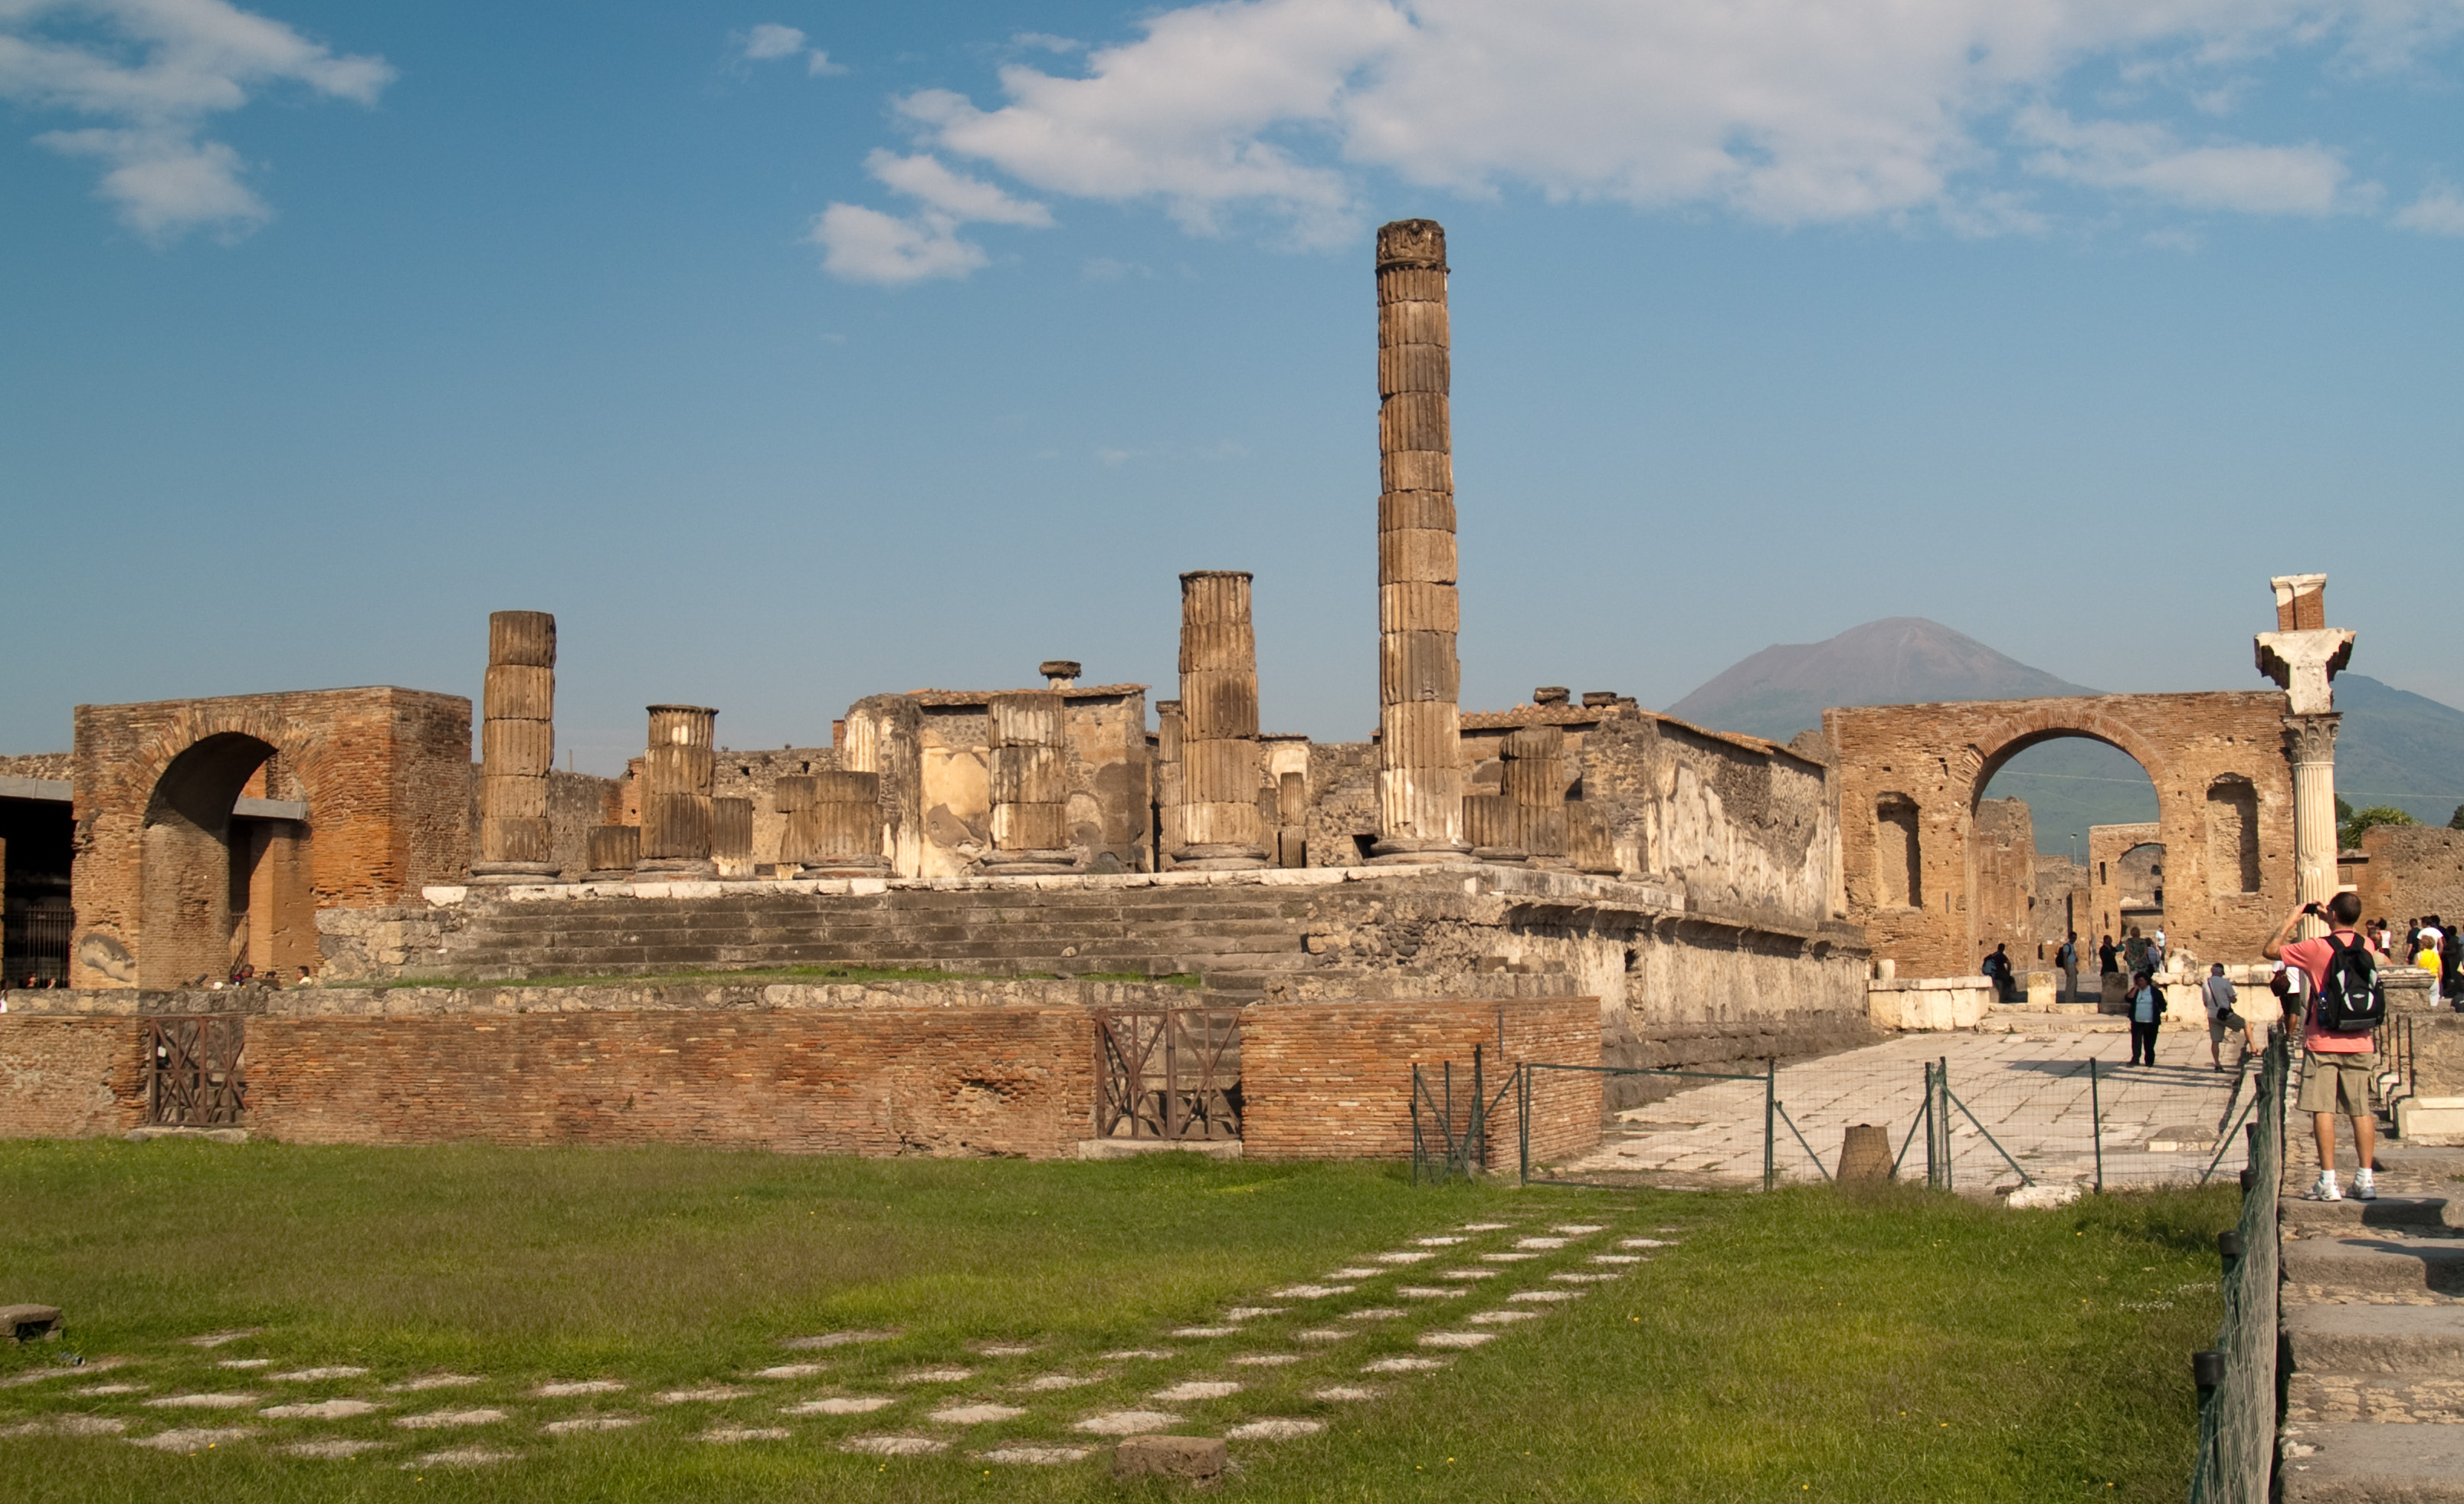 an analysis of the forum in the temple of jupiter